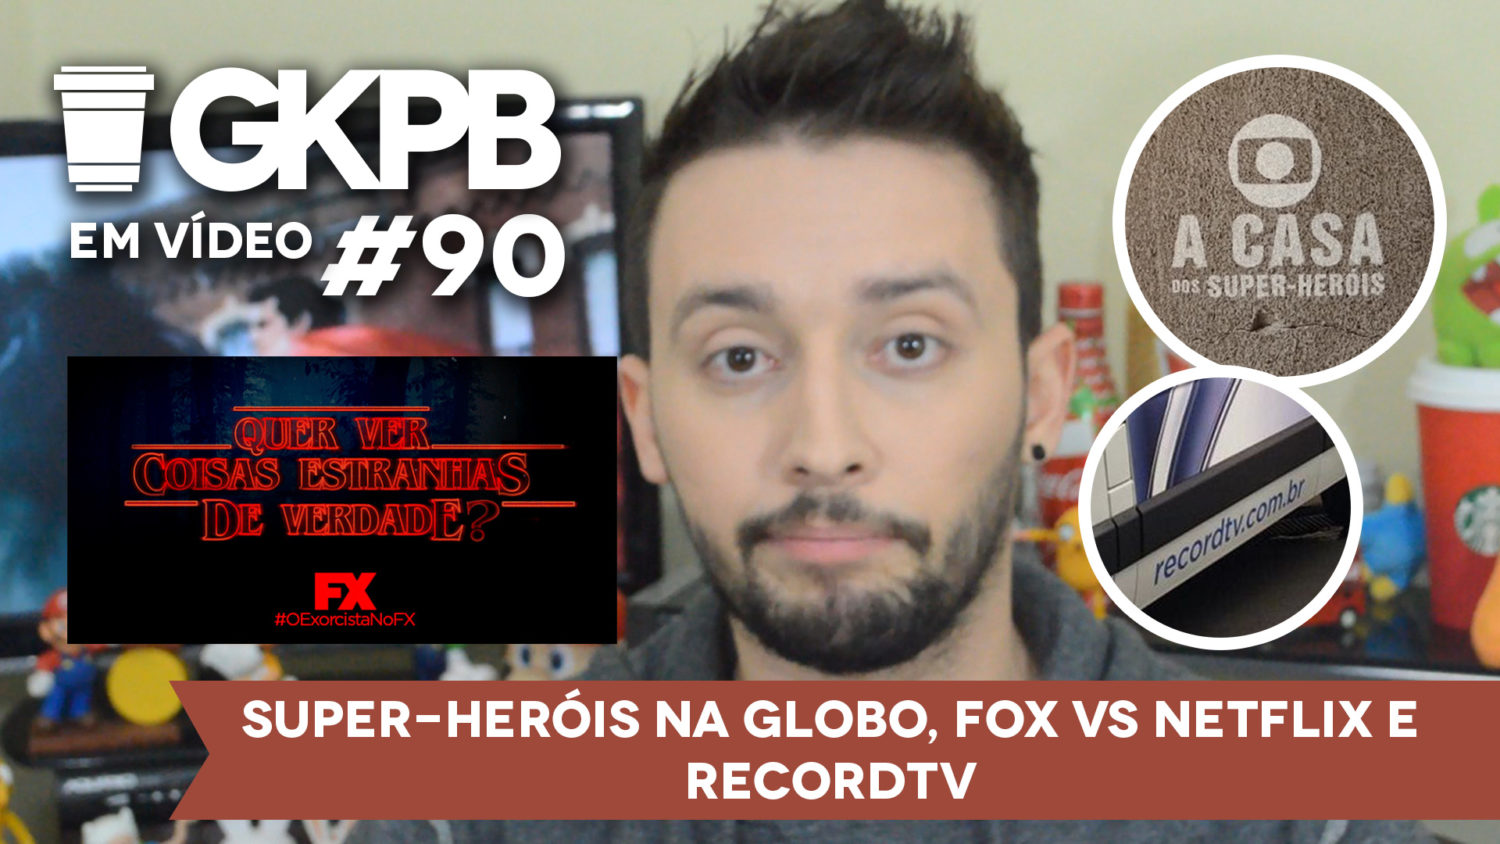 gkpb-em-video-90-recordtv-netflix-fox-globo-super-herois-blog-gkpb